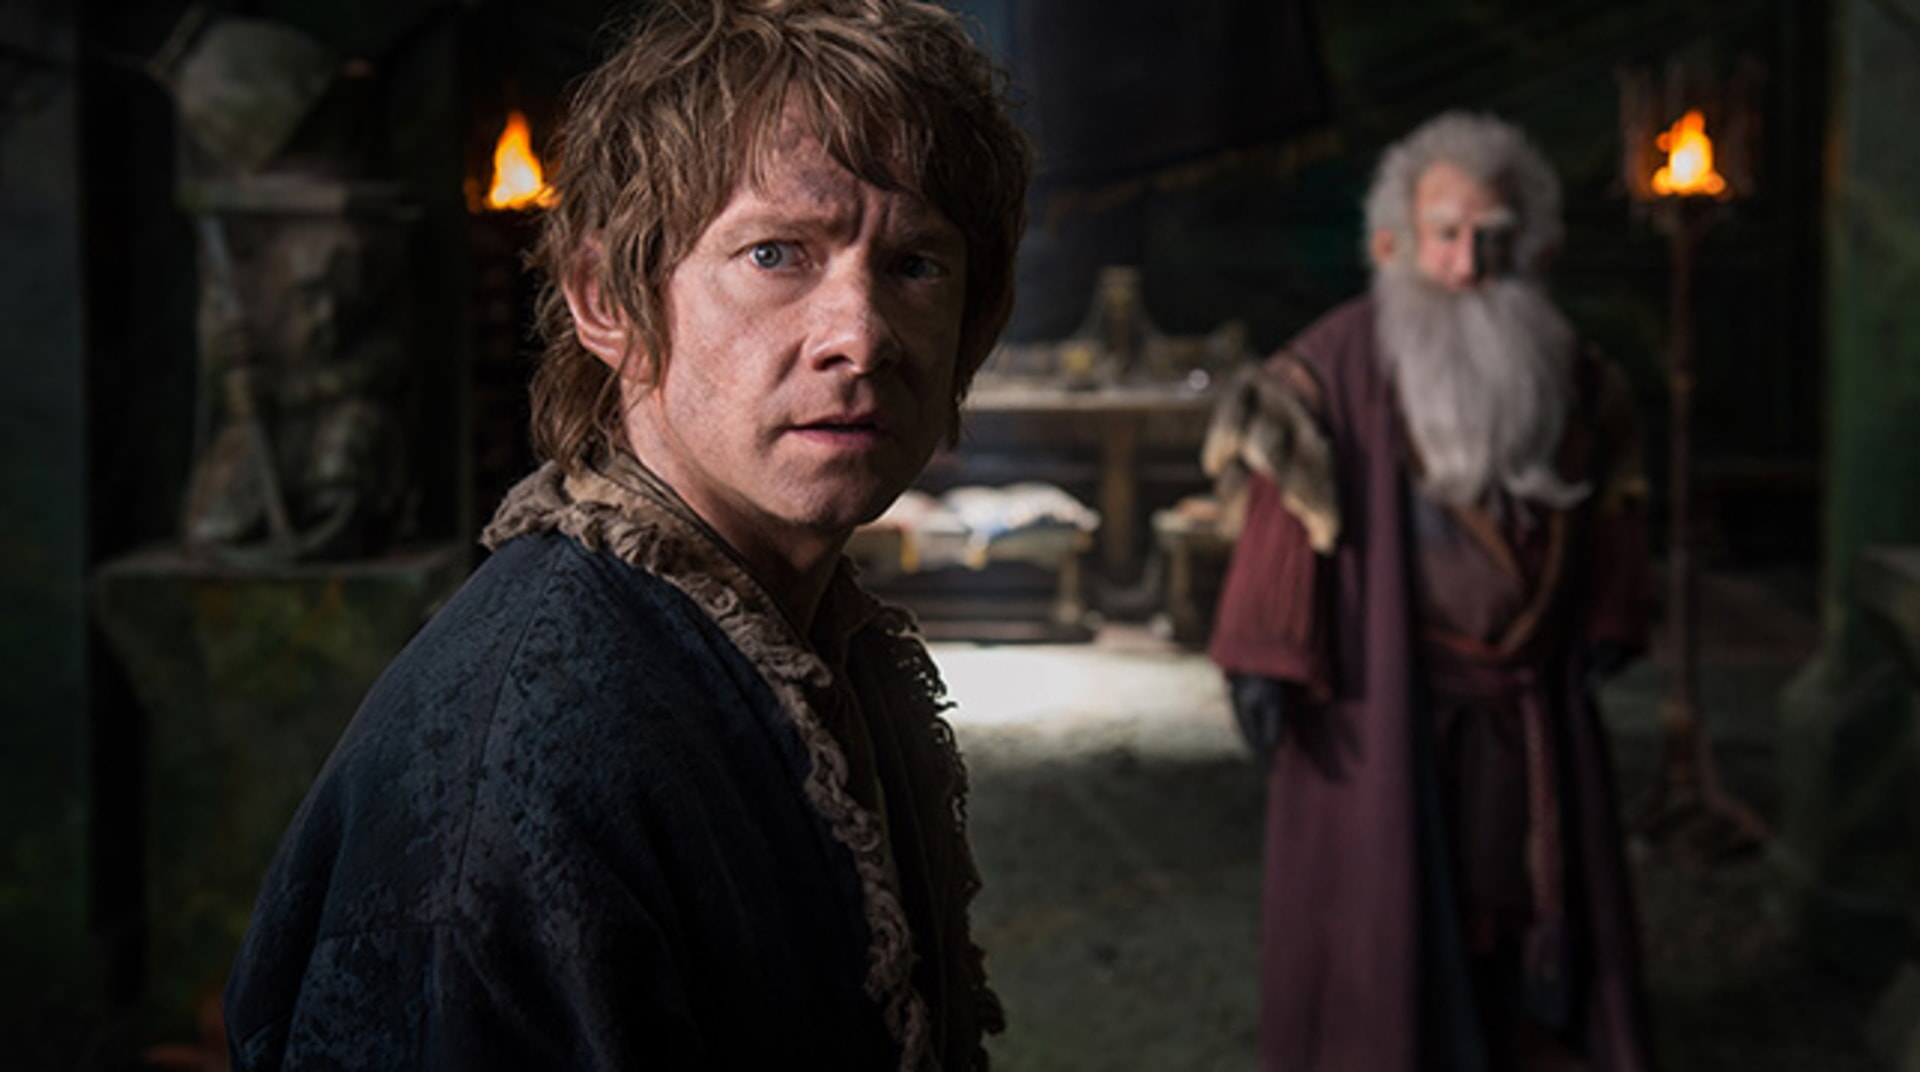 The Hobbit: The Battle of the Five Armies - Image 16